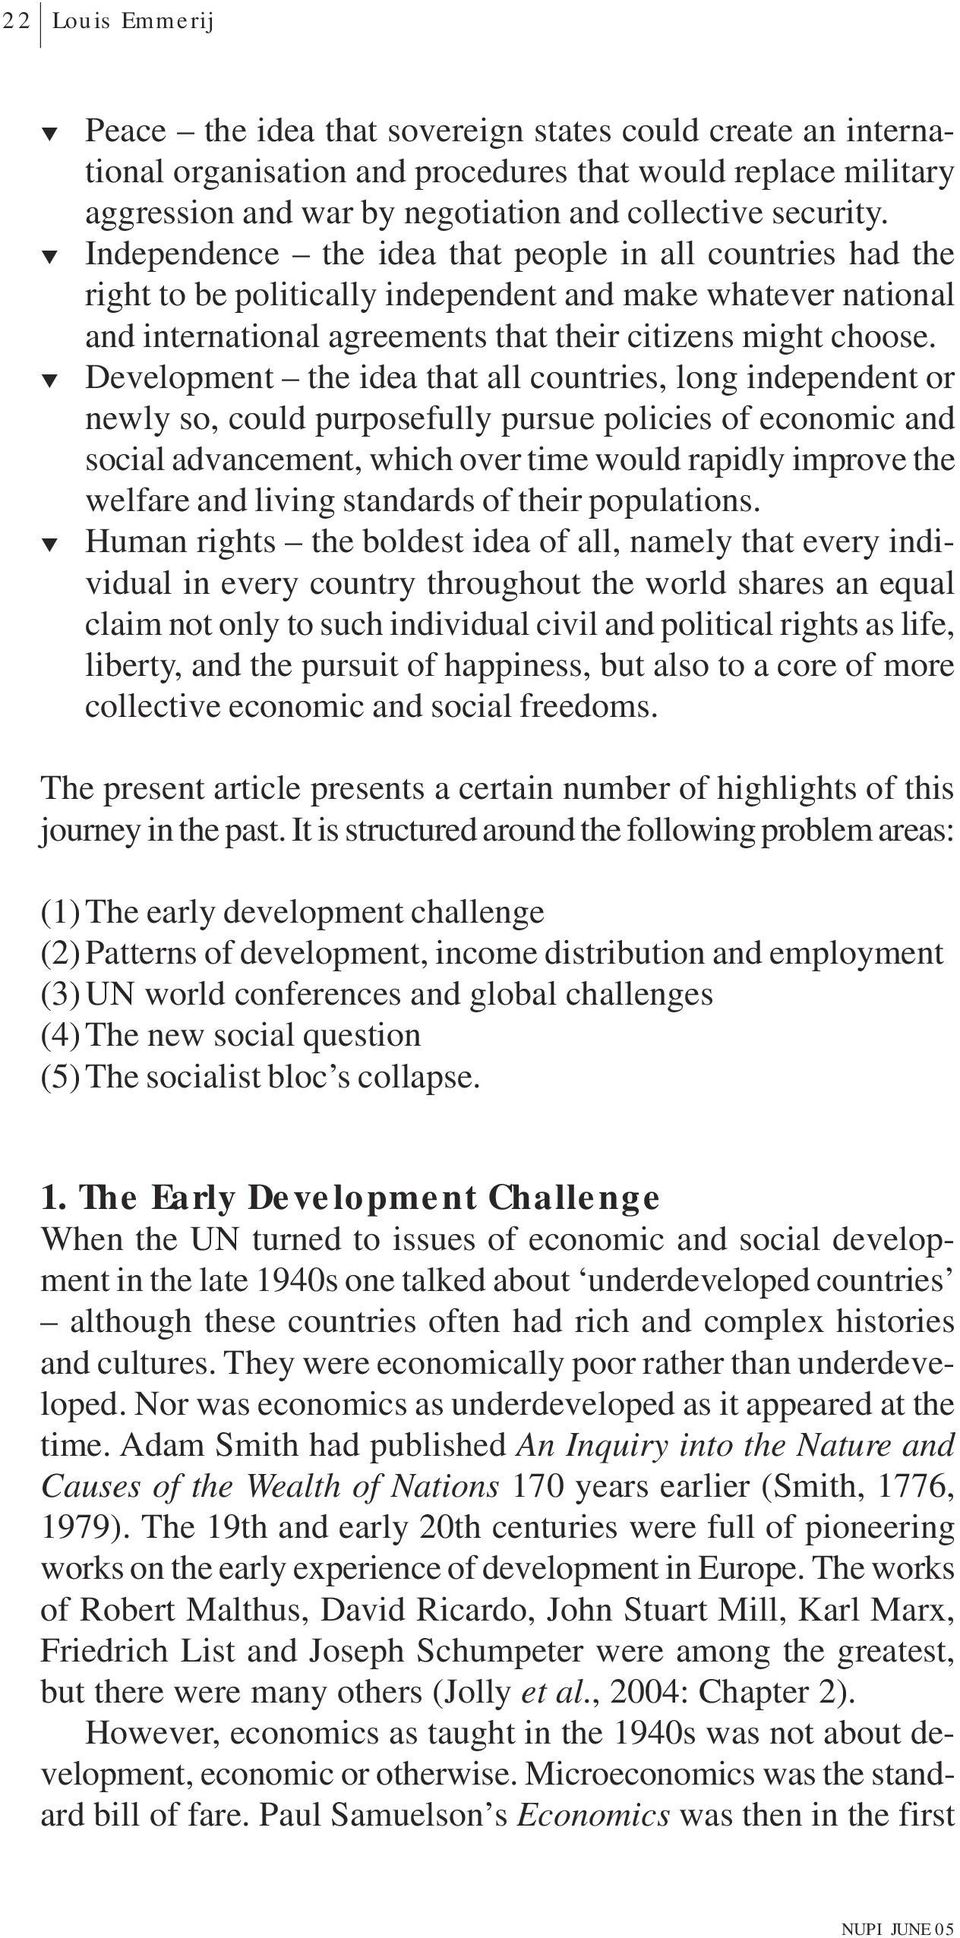 ! Development the idea that all countries, long independent or newly so, could purposefully pursue policies of economic and social advancement, which over time would rapidly improve the welfare and